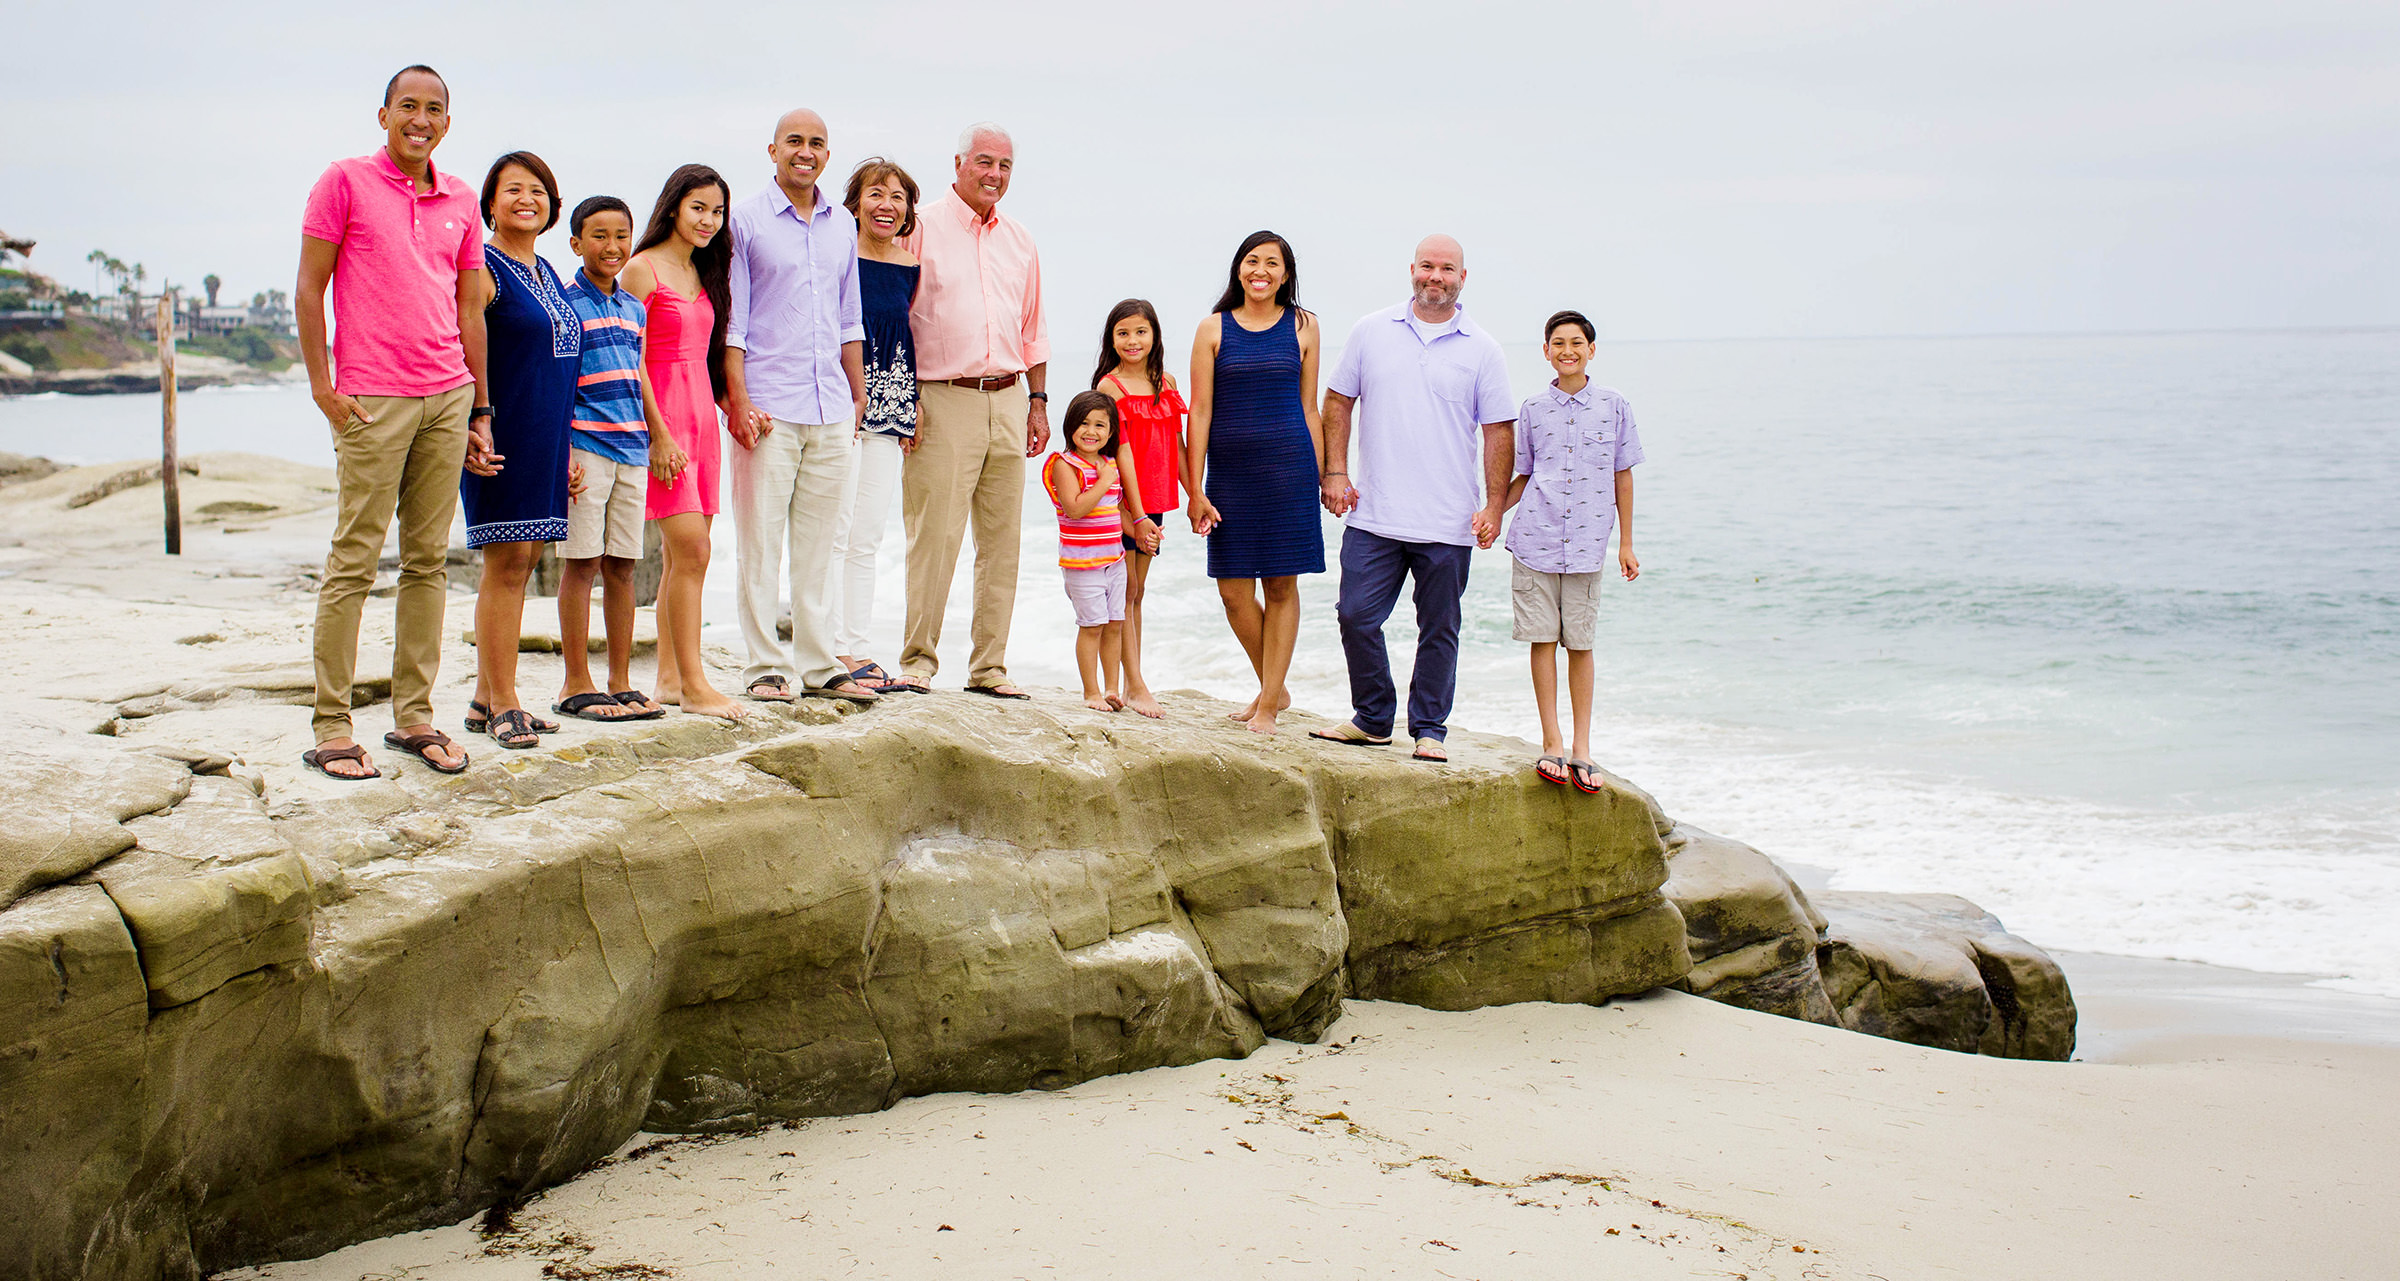 San Diego family reunion pictured at La Jolla beach. Photo Dennis Mock photographer